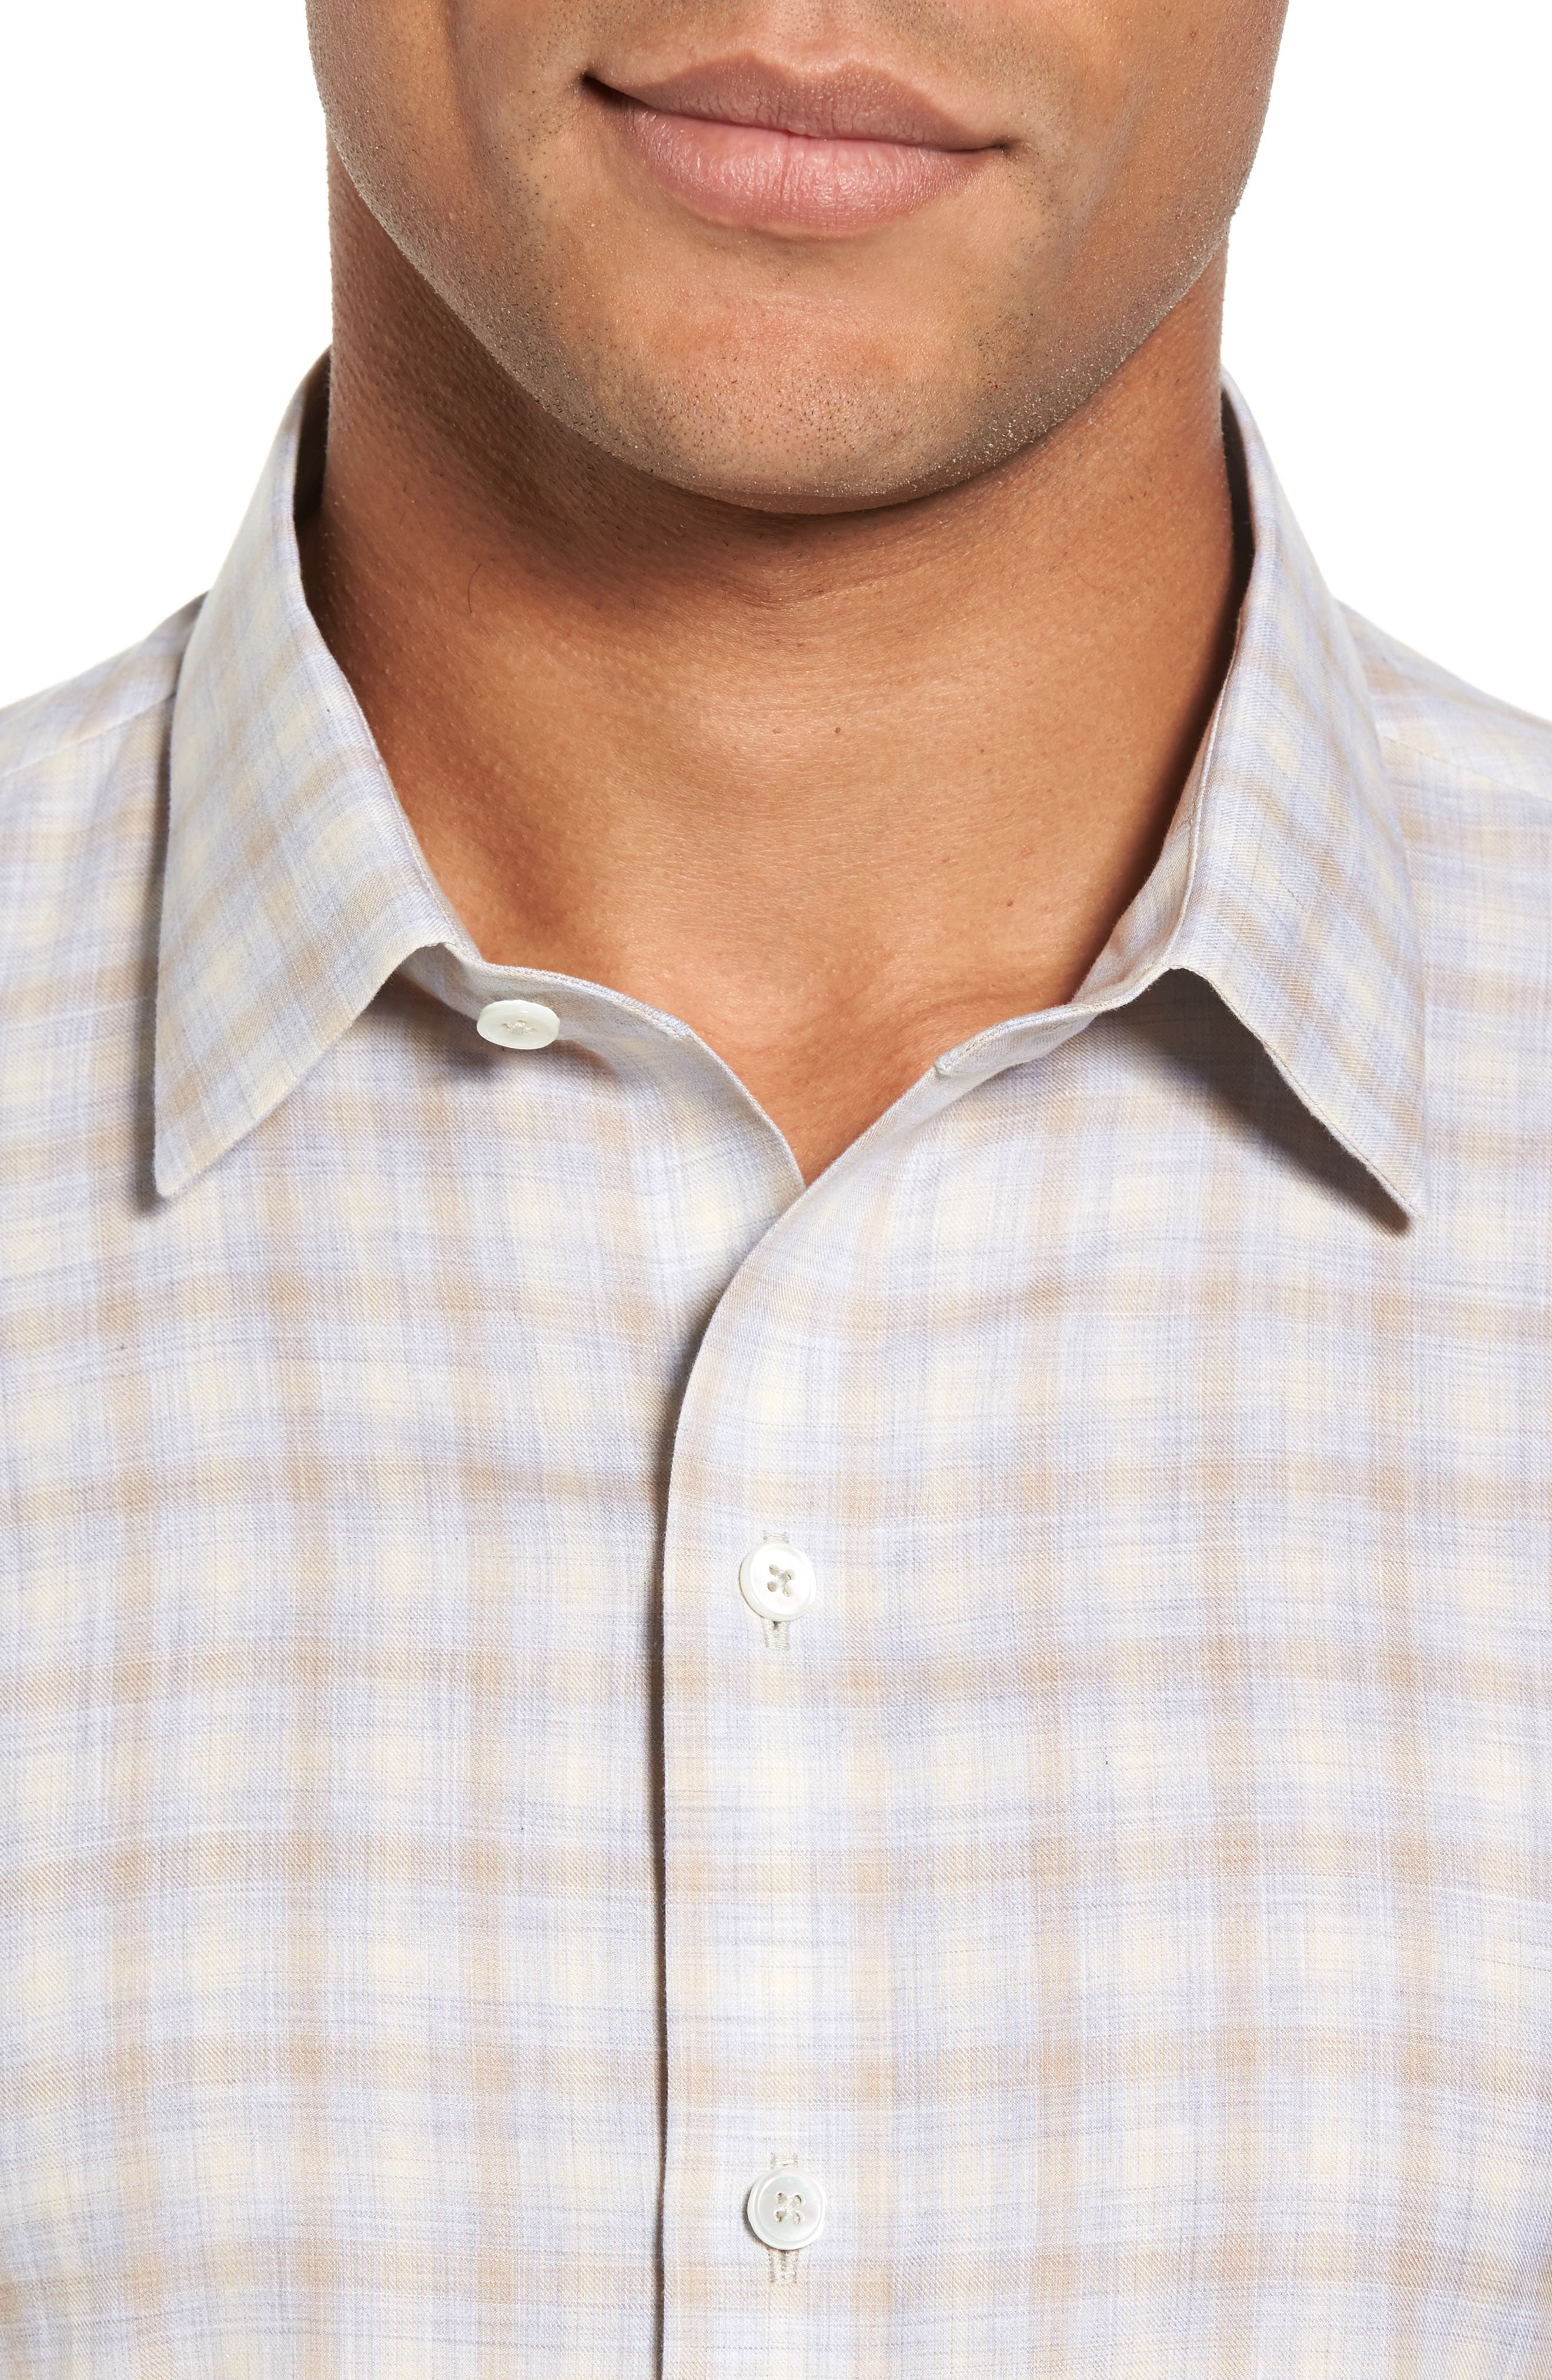 Lowles Slim Fit Plaid Sport Shirt,                             Alternate thumbnail 4, color,